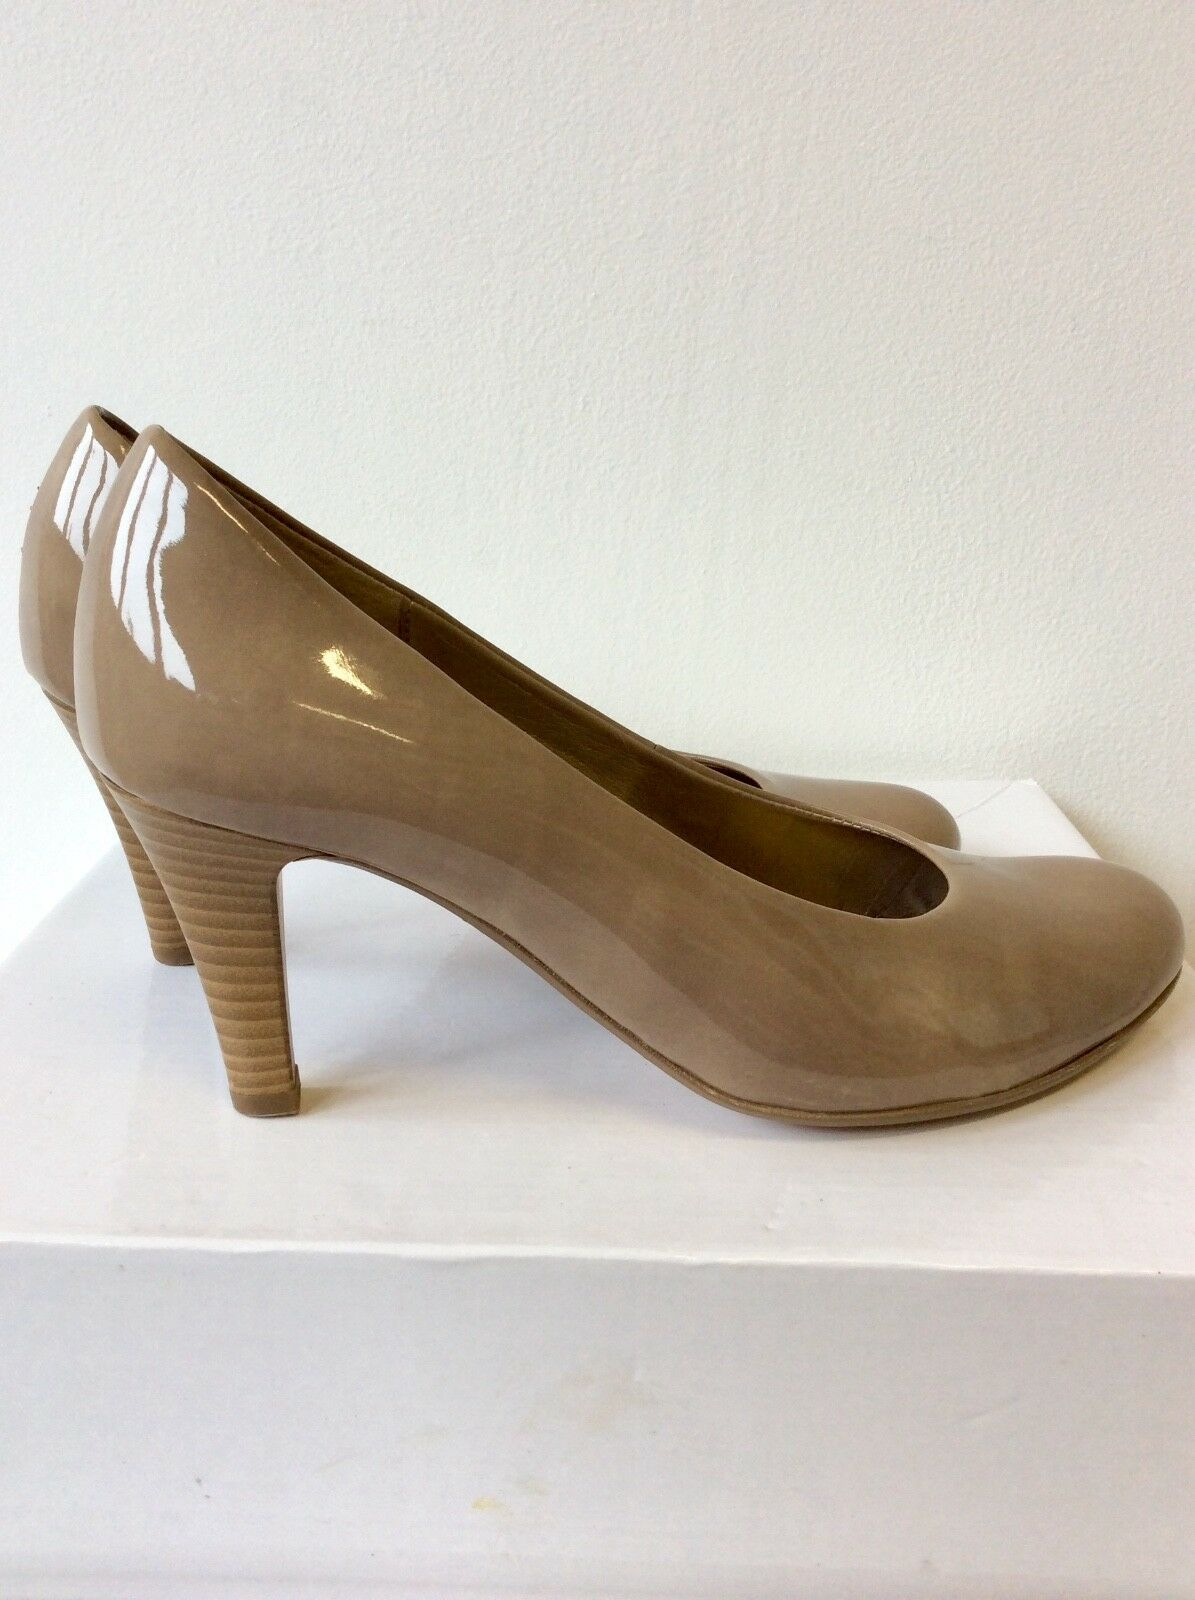 GABOR TAUPE PATENT HEELED COURT 5/38 Schuhe SIZE 5/38 COURT ec19a9